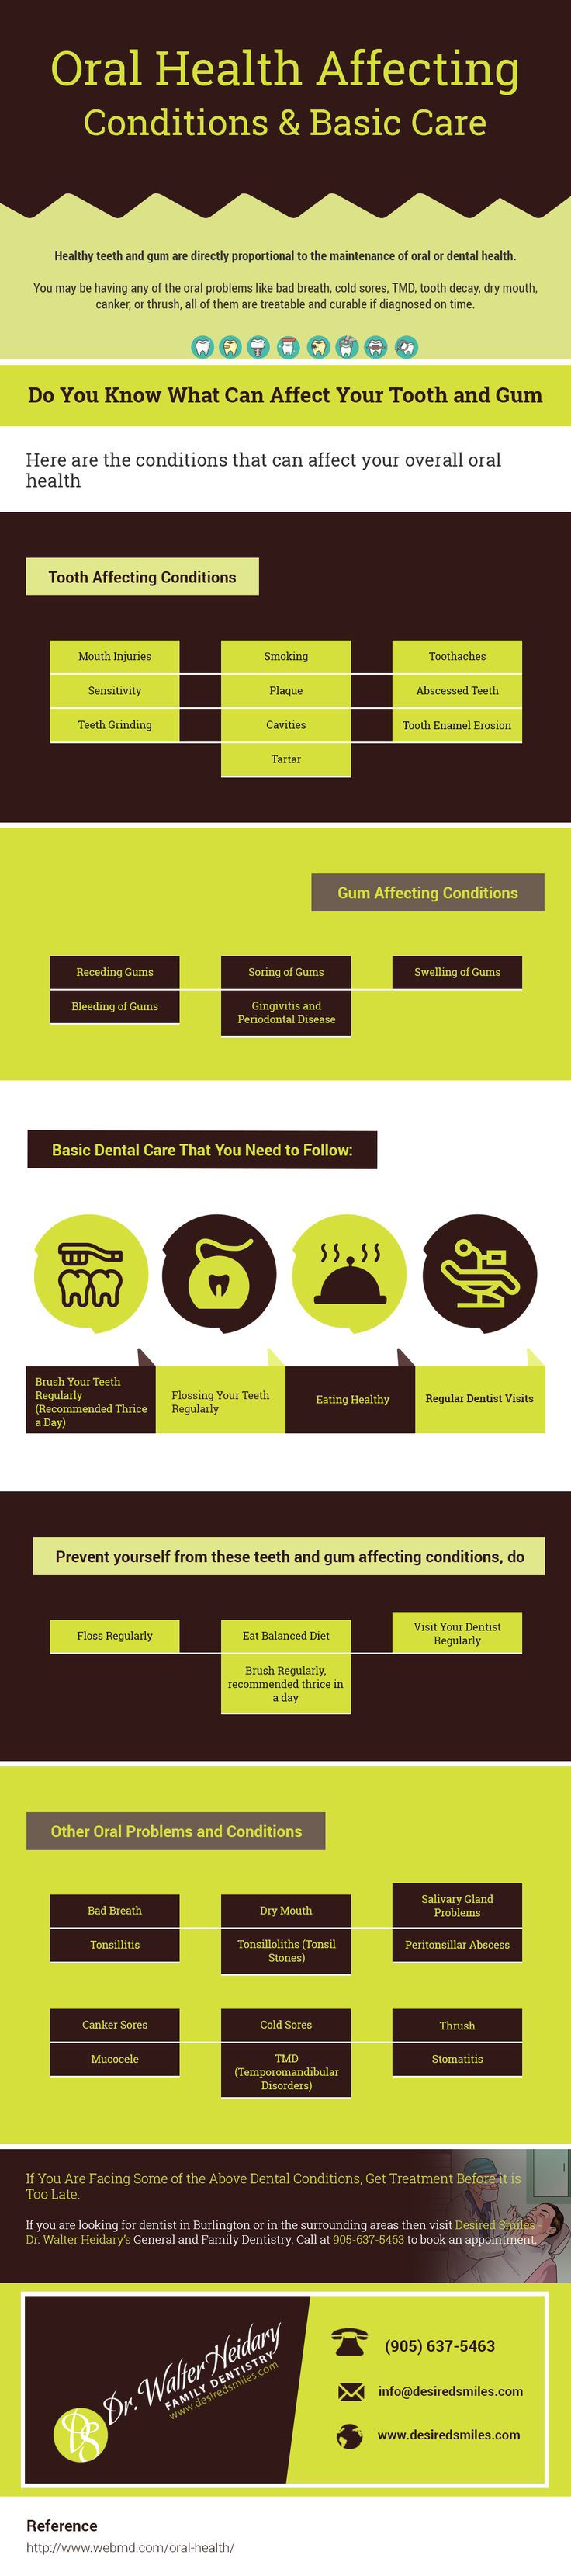 Oral Health Affecting Conditions and Basic Care.  Learn what different oral health conditions can affect your teeth and how to protect your teeth and gums. Go through this infographic and learn more. Call us at 905-637-5463 to discuss about your oral health